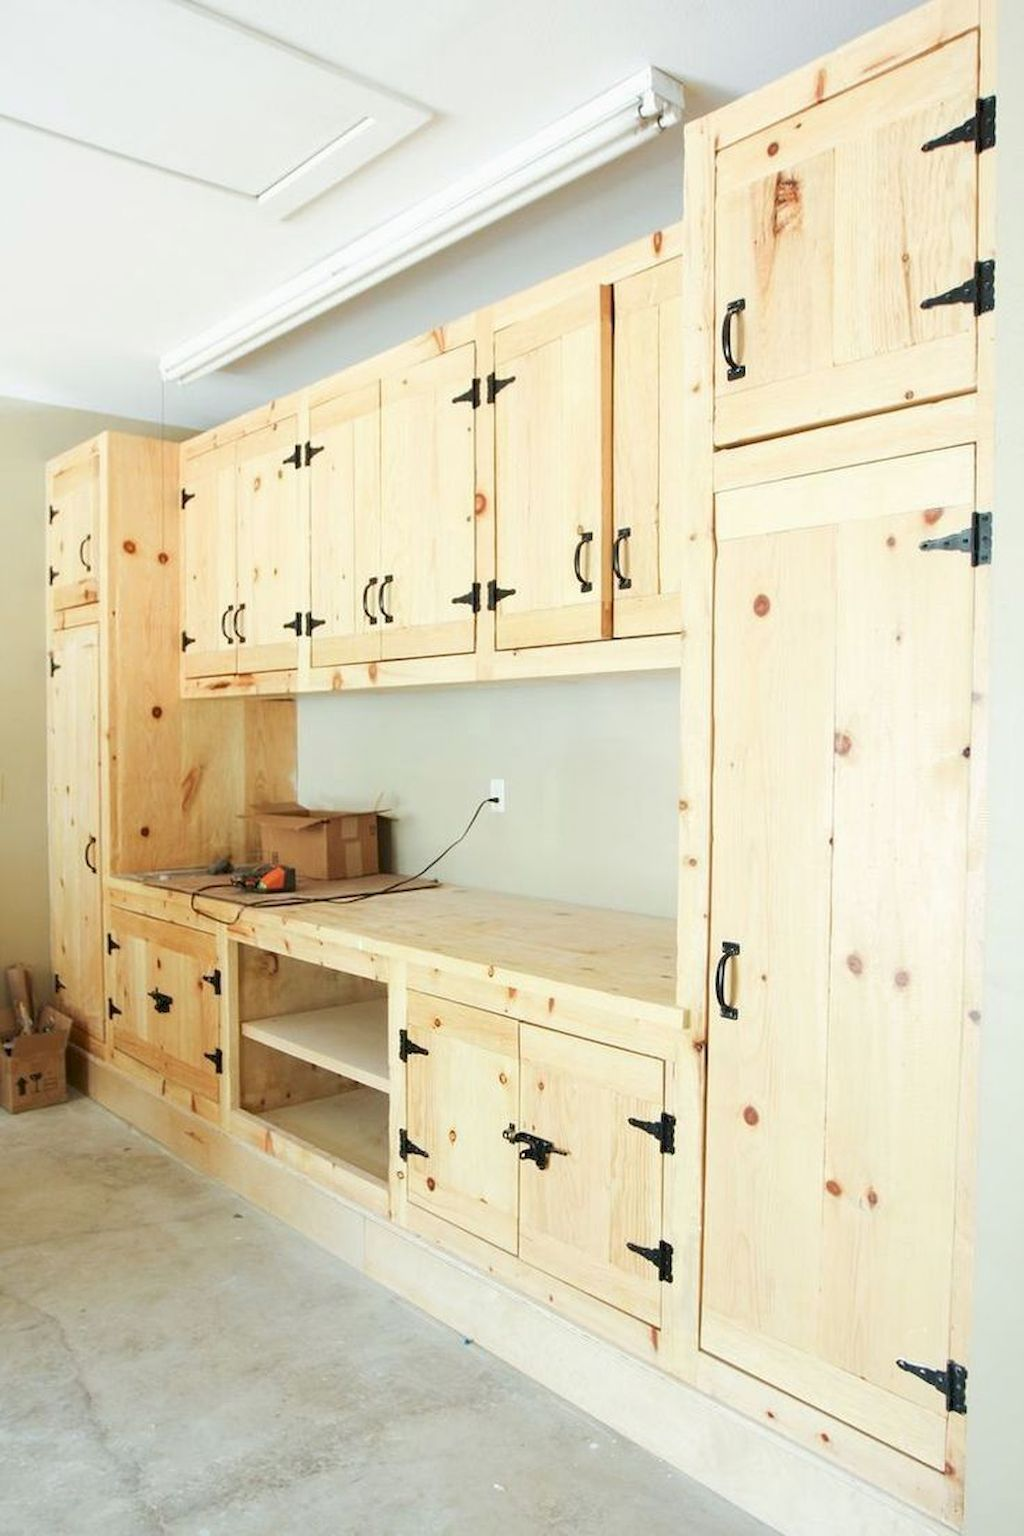 45 Clever Ideas to Organize your Garage - BrowsyouRoom #garageideas